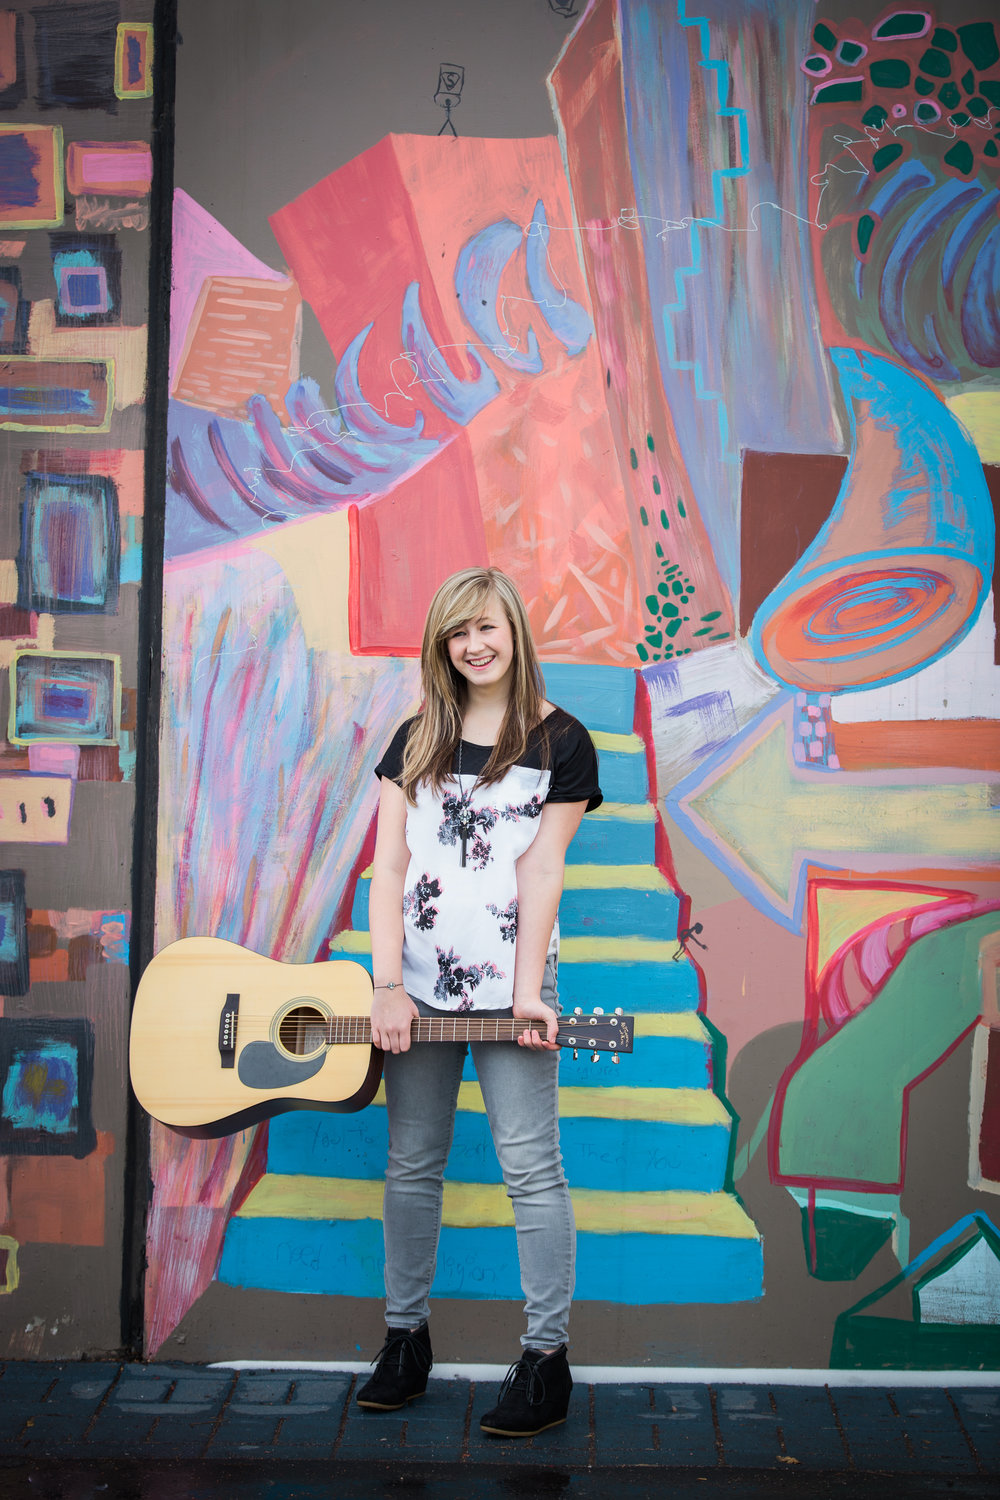 Teen girl holding her guitar standing in front of a graffiti wall in downtown Colorado Springs, Colorado.